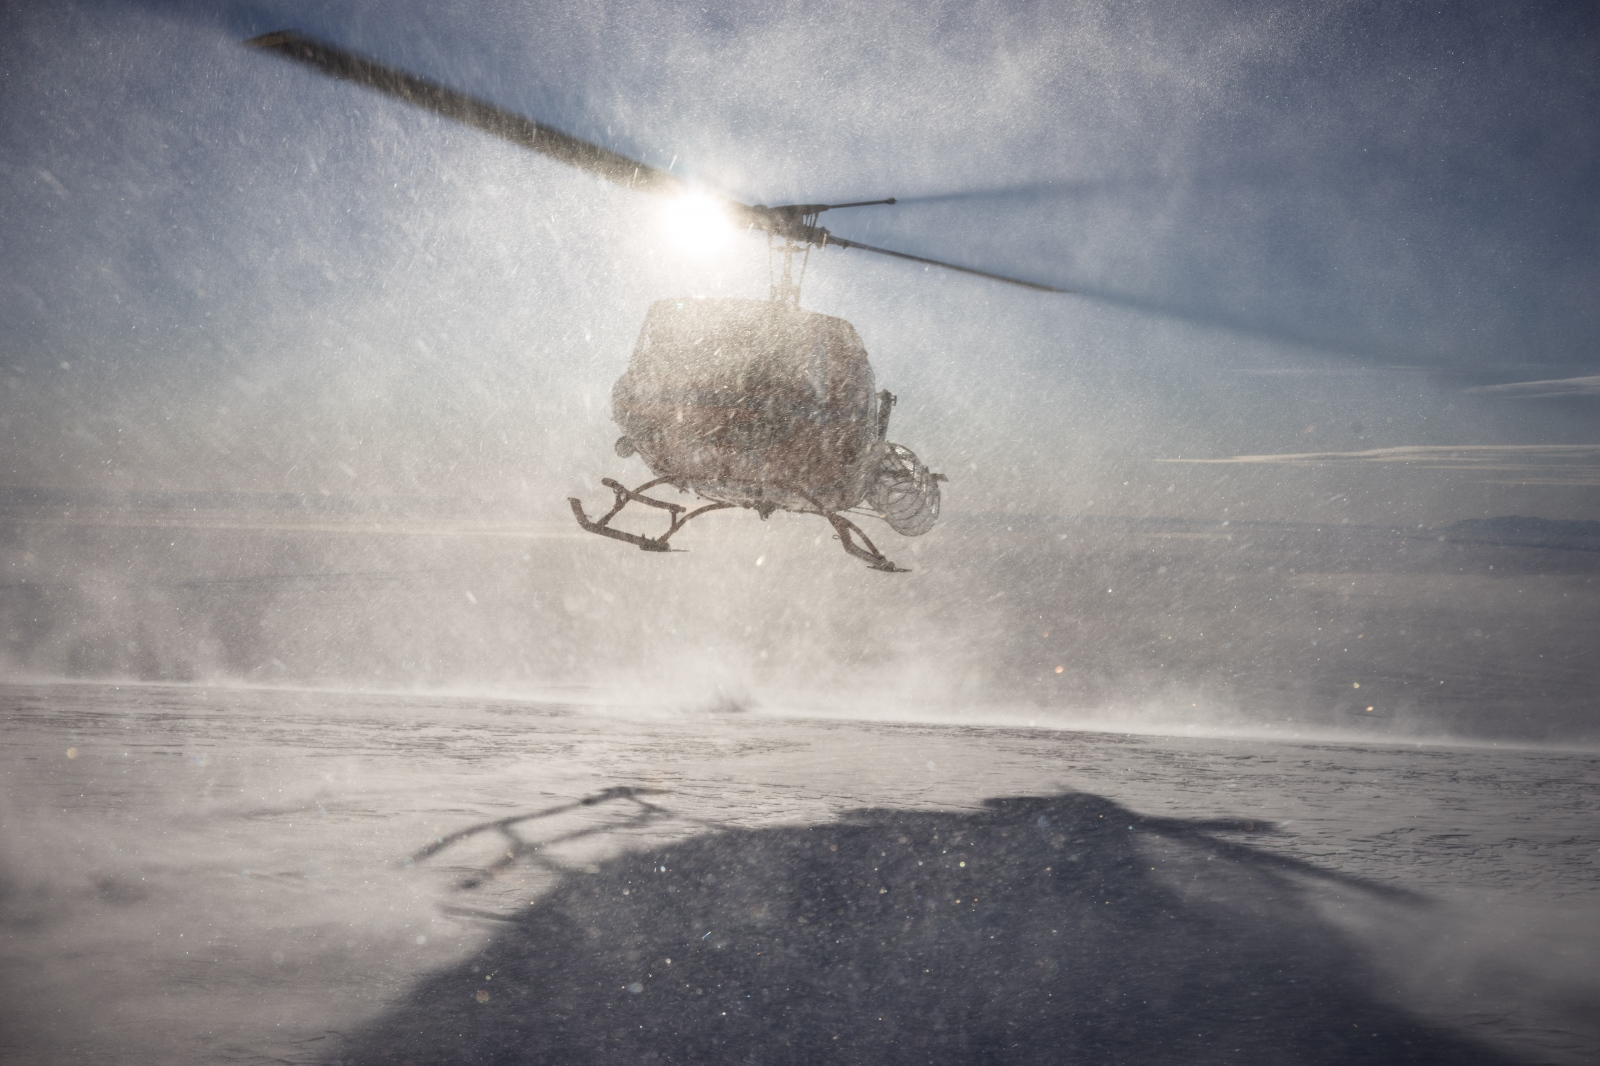 27 November 2015. A National Science Foundation Bell 212 helicopter lands to pick up the science group on the glaciated flank of Mt. Erebus' south side after a site installation.